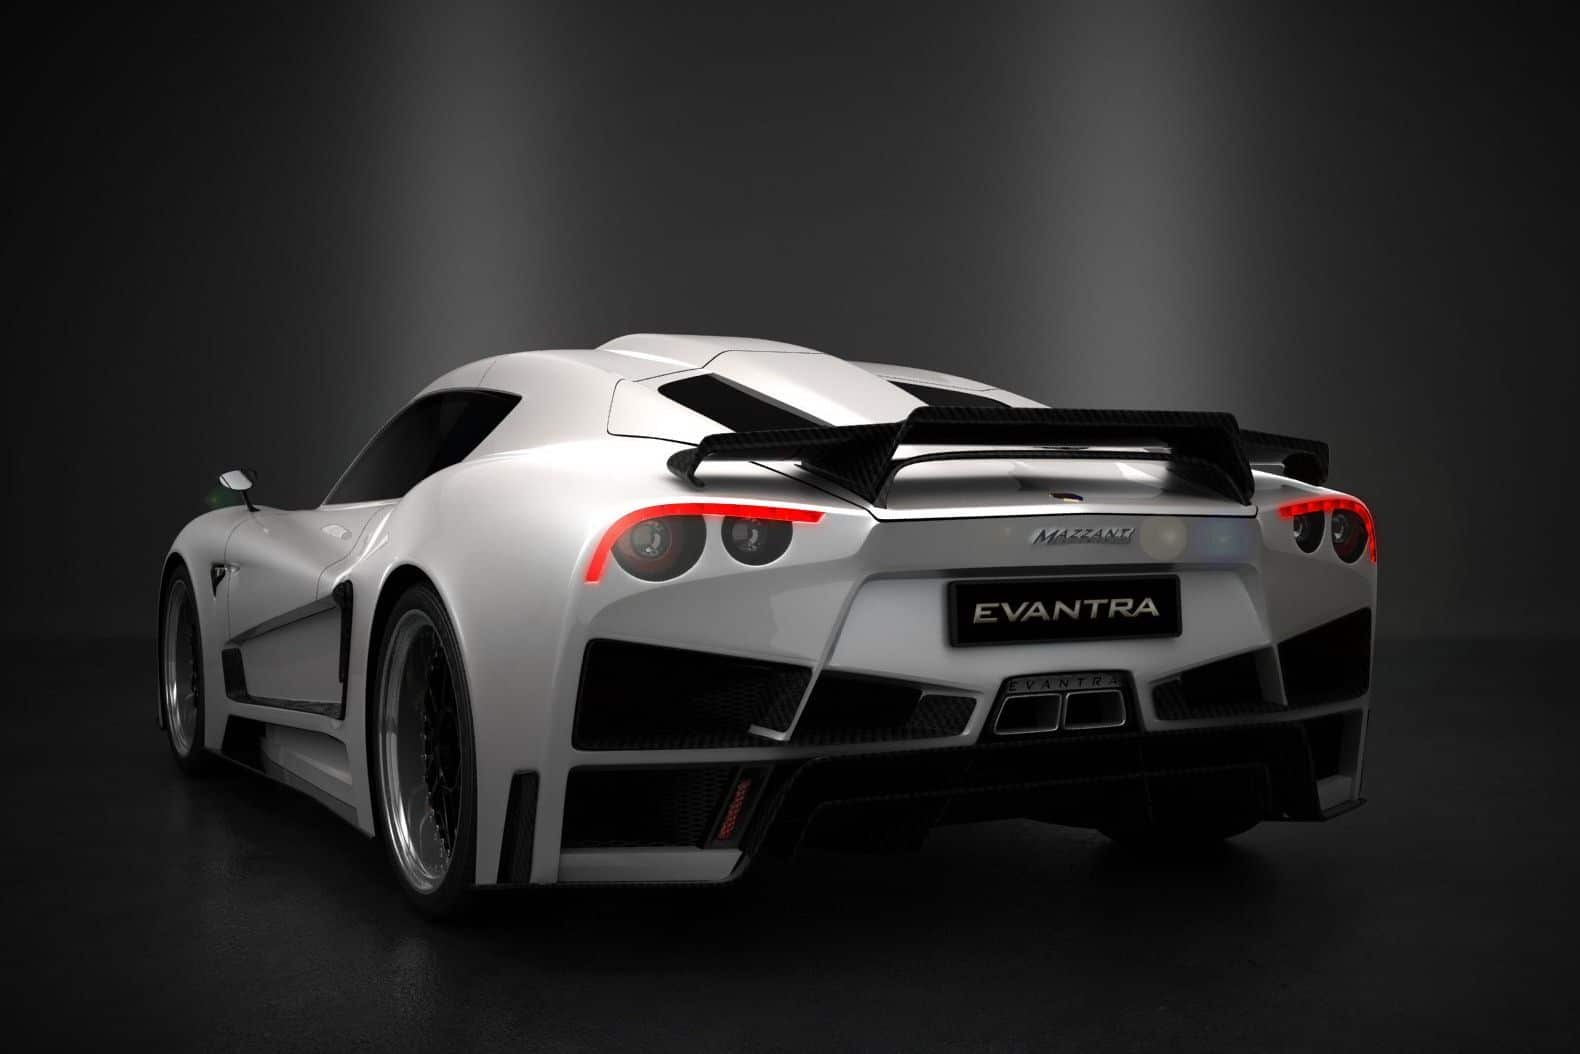 Most Expensive Car In The World >> Dream Cars: Mazzanti Evantra - Beverly Hills Magazine